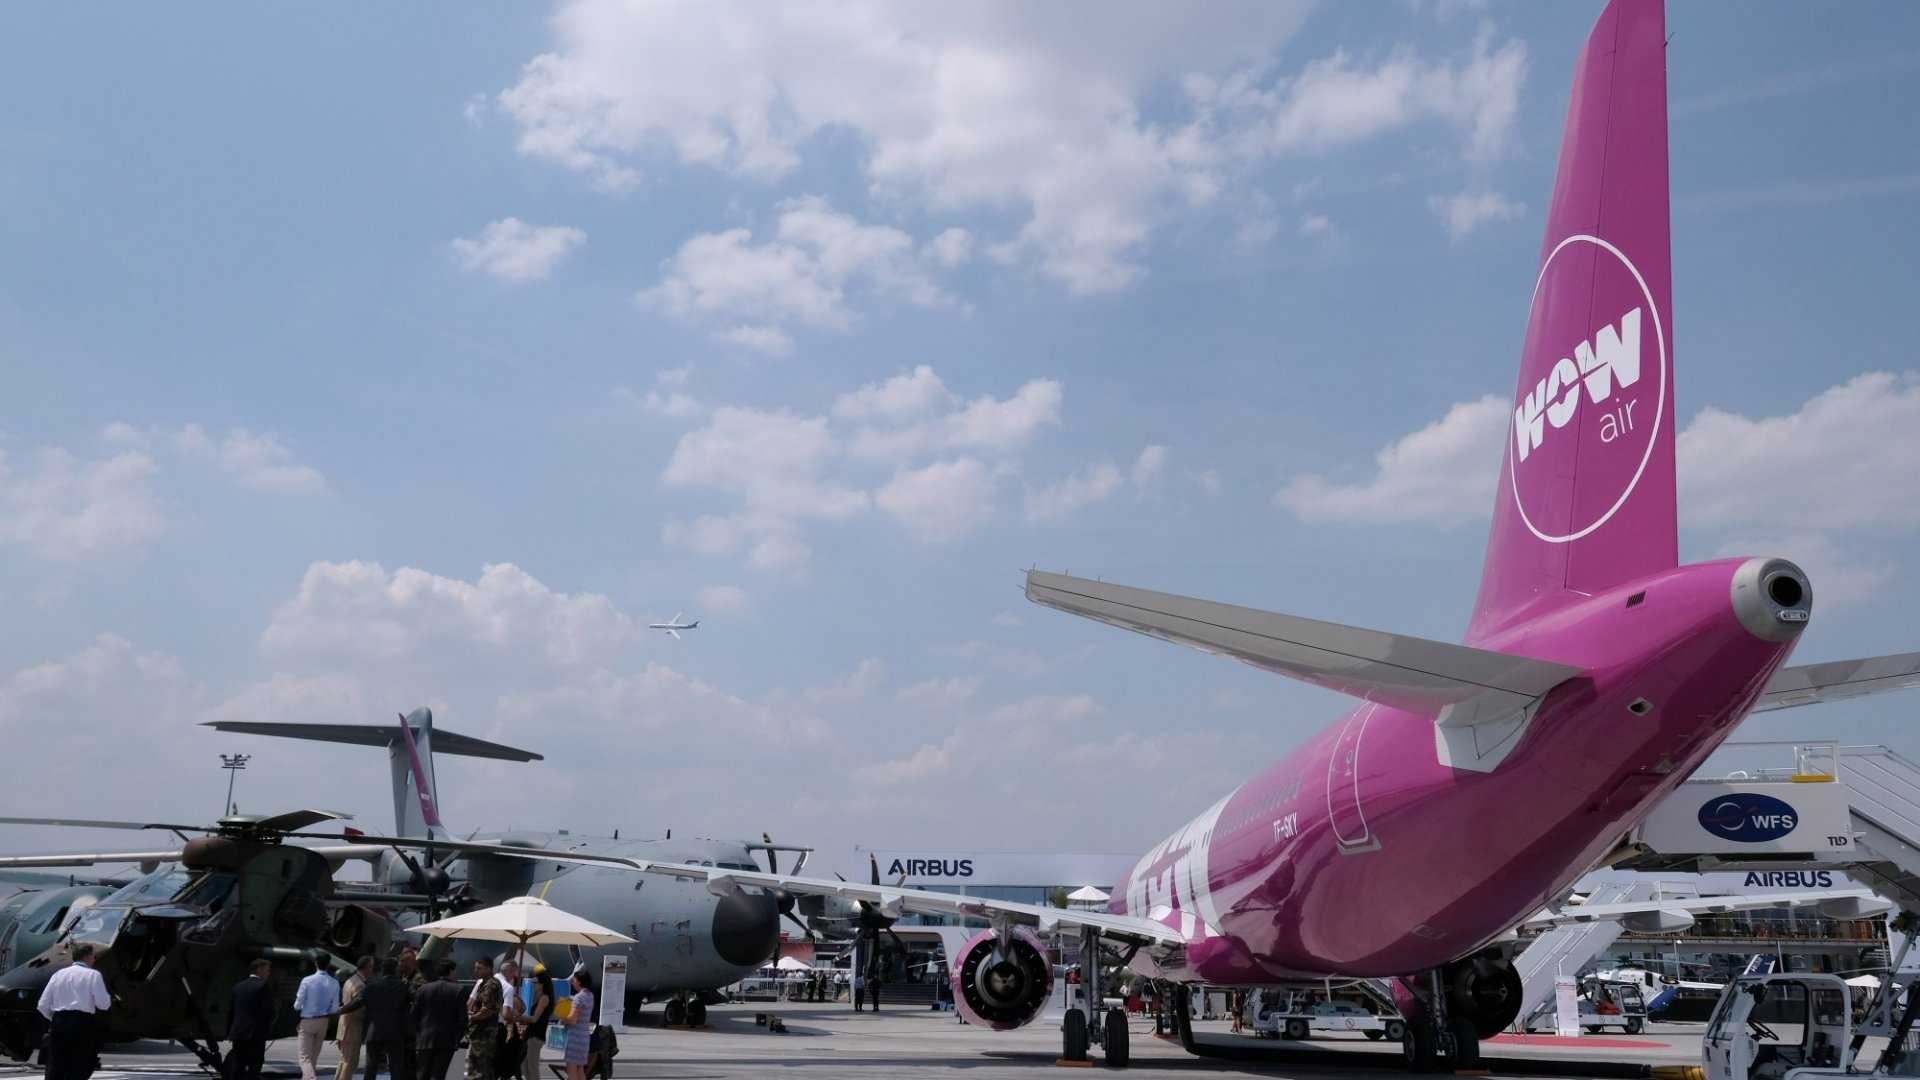 Wow Air Screwed All Its Passengers. Here's What to Do If It Ever Happens to You